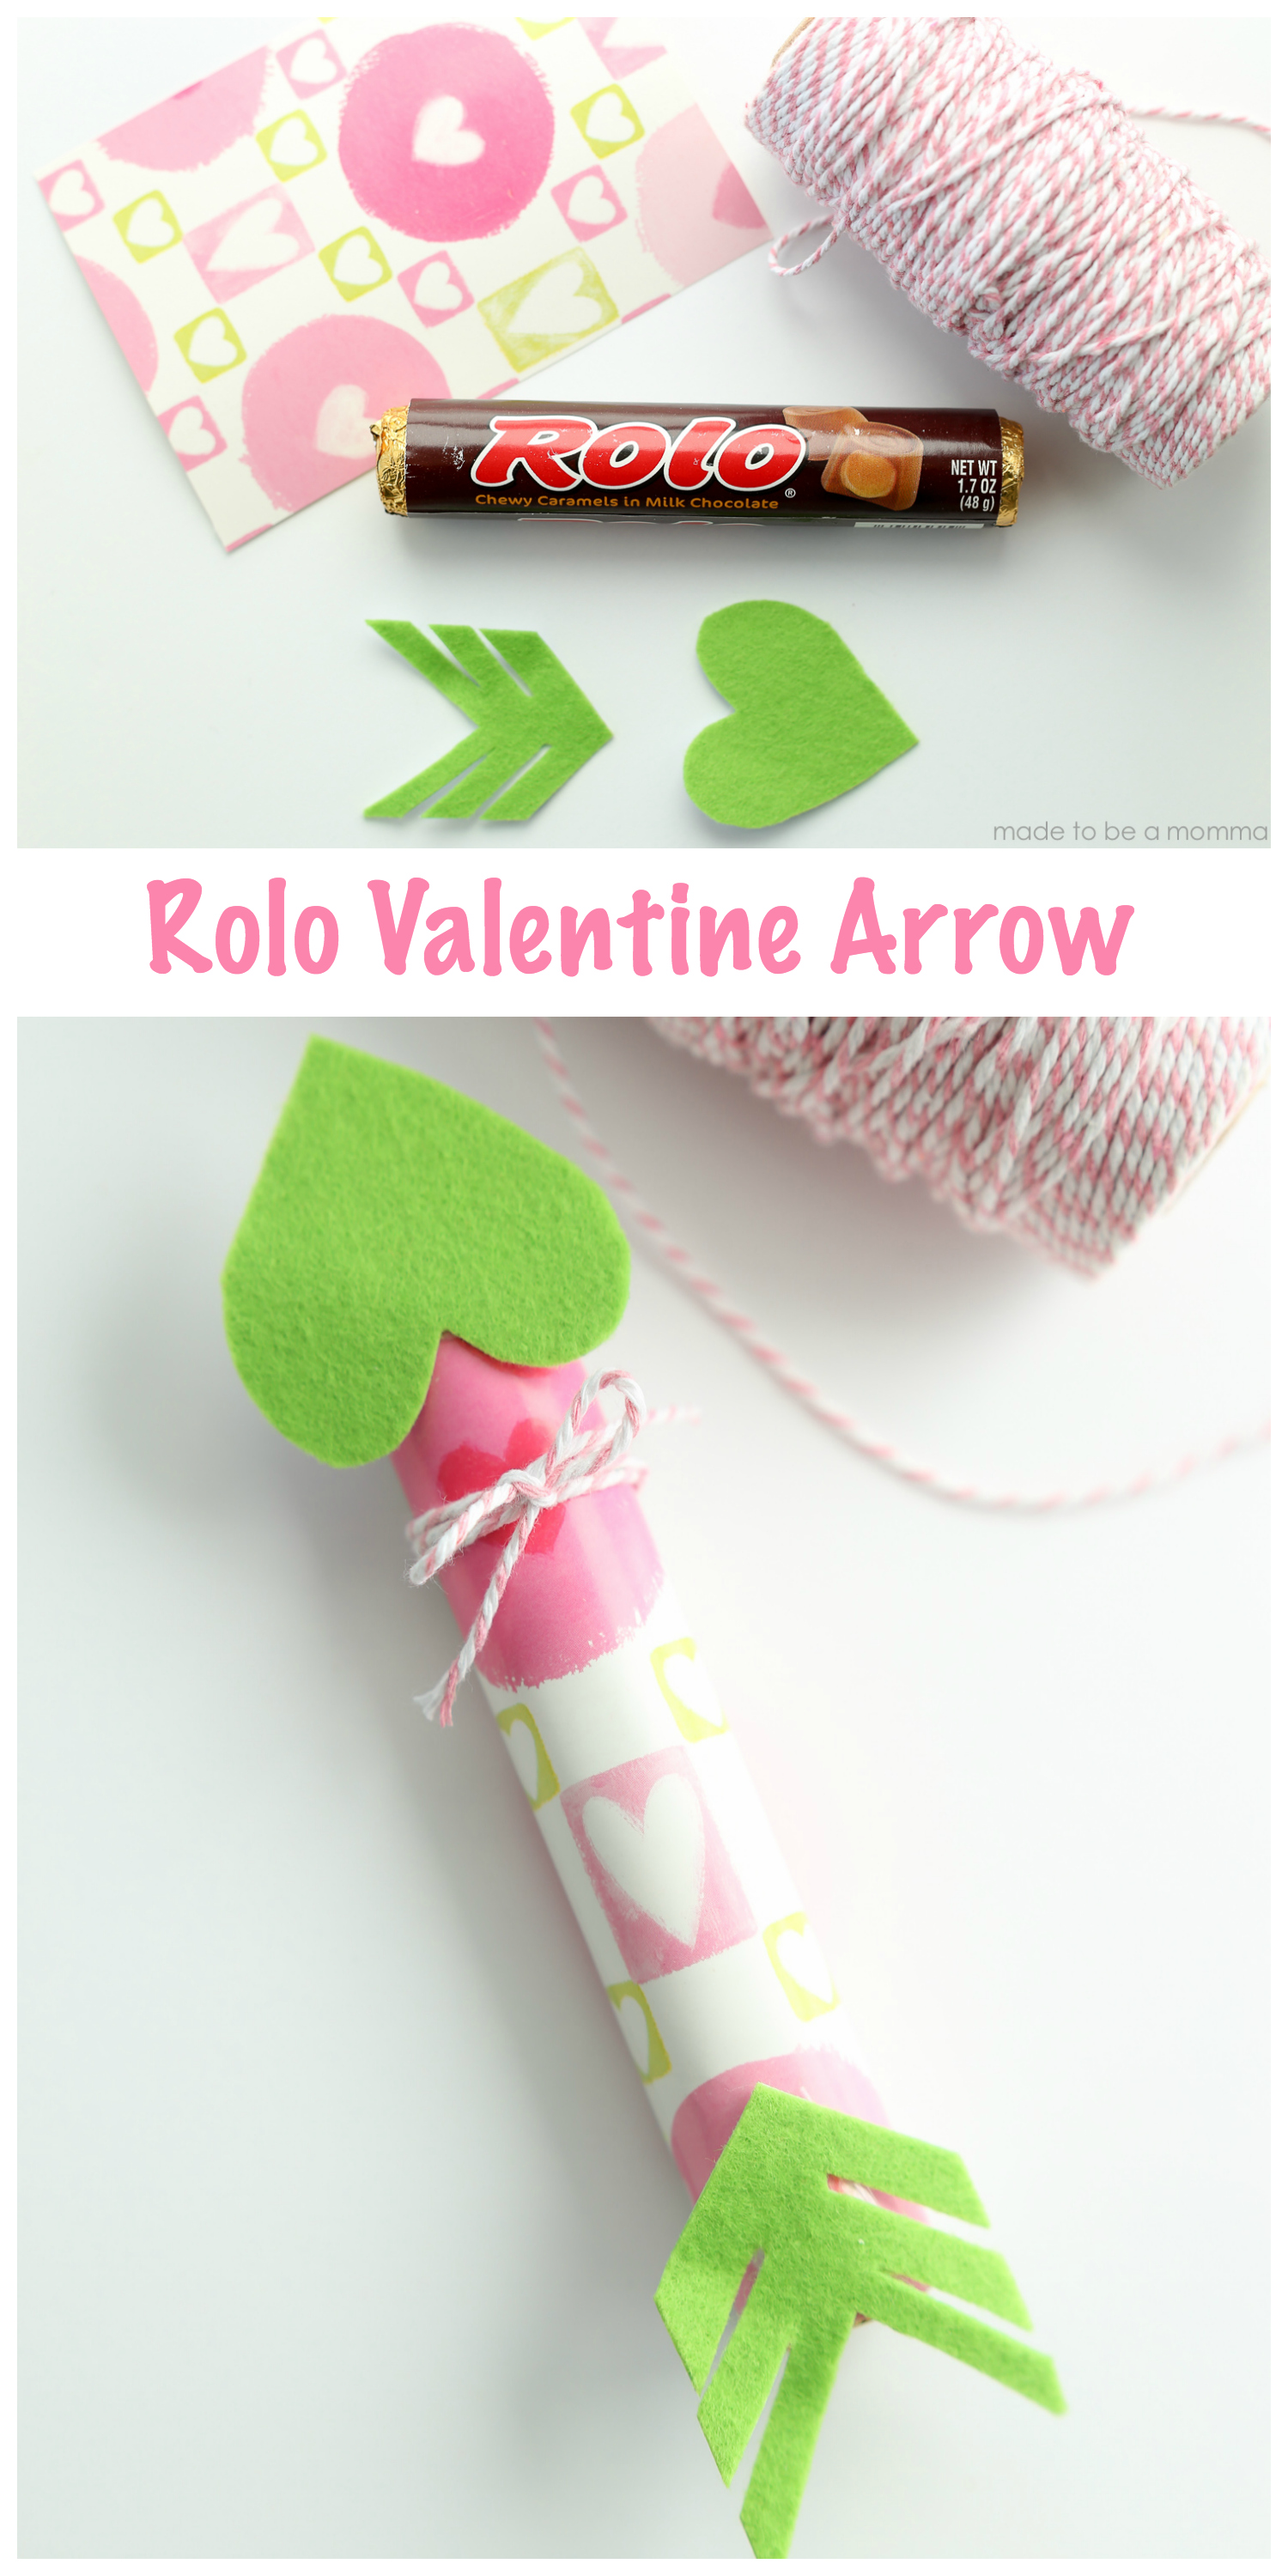 Rolo Valentine Arrow: a simple way to share a sweet treat with your loved ones and celebrate Valentines Day.